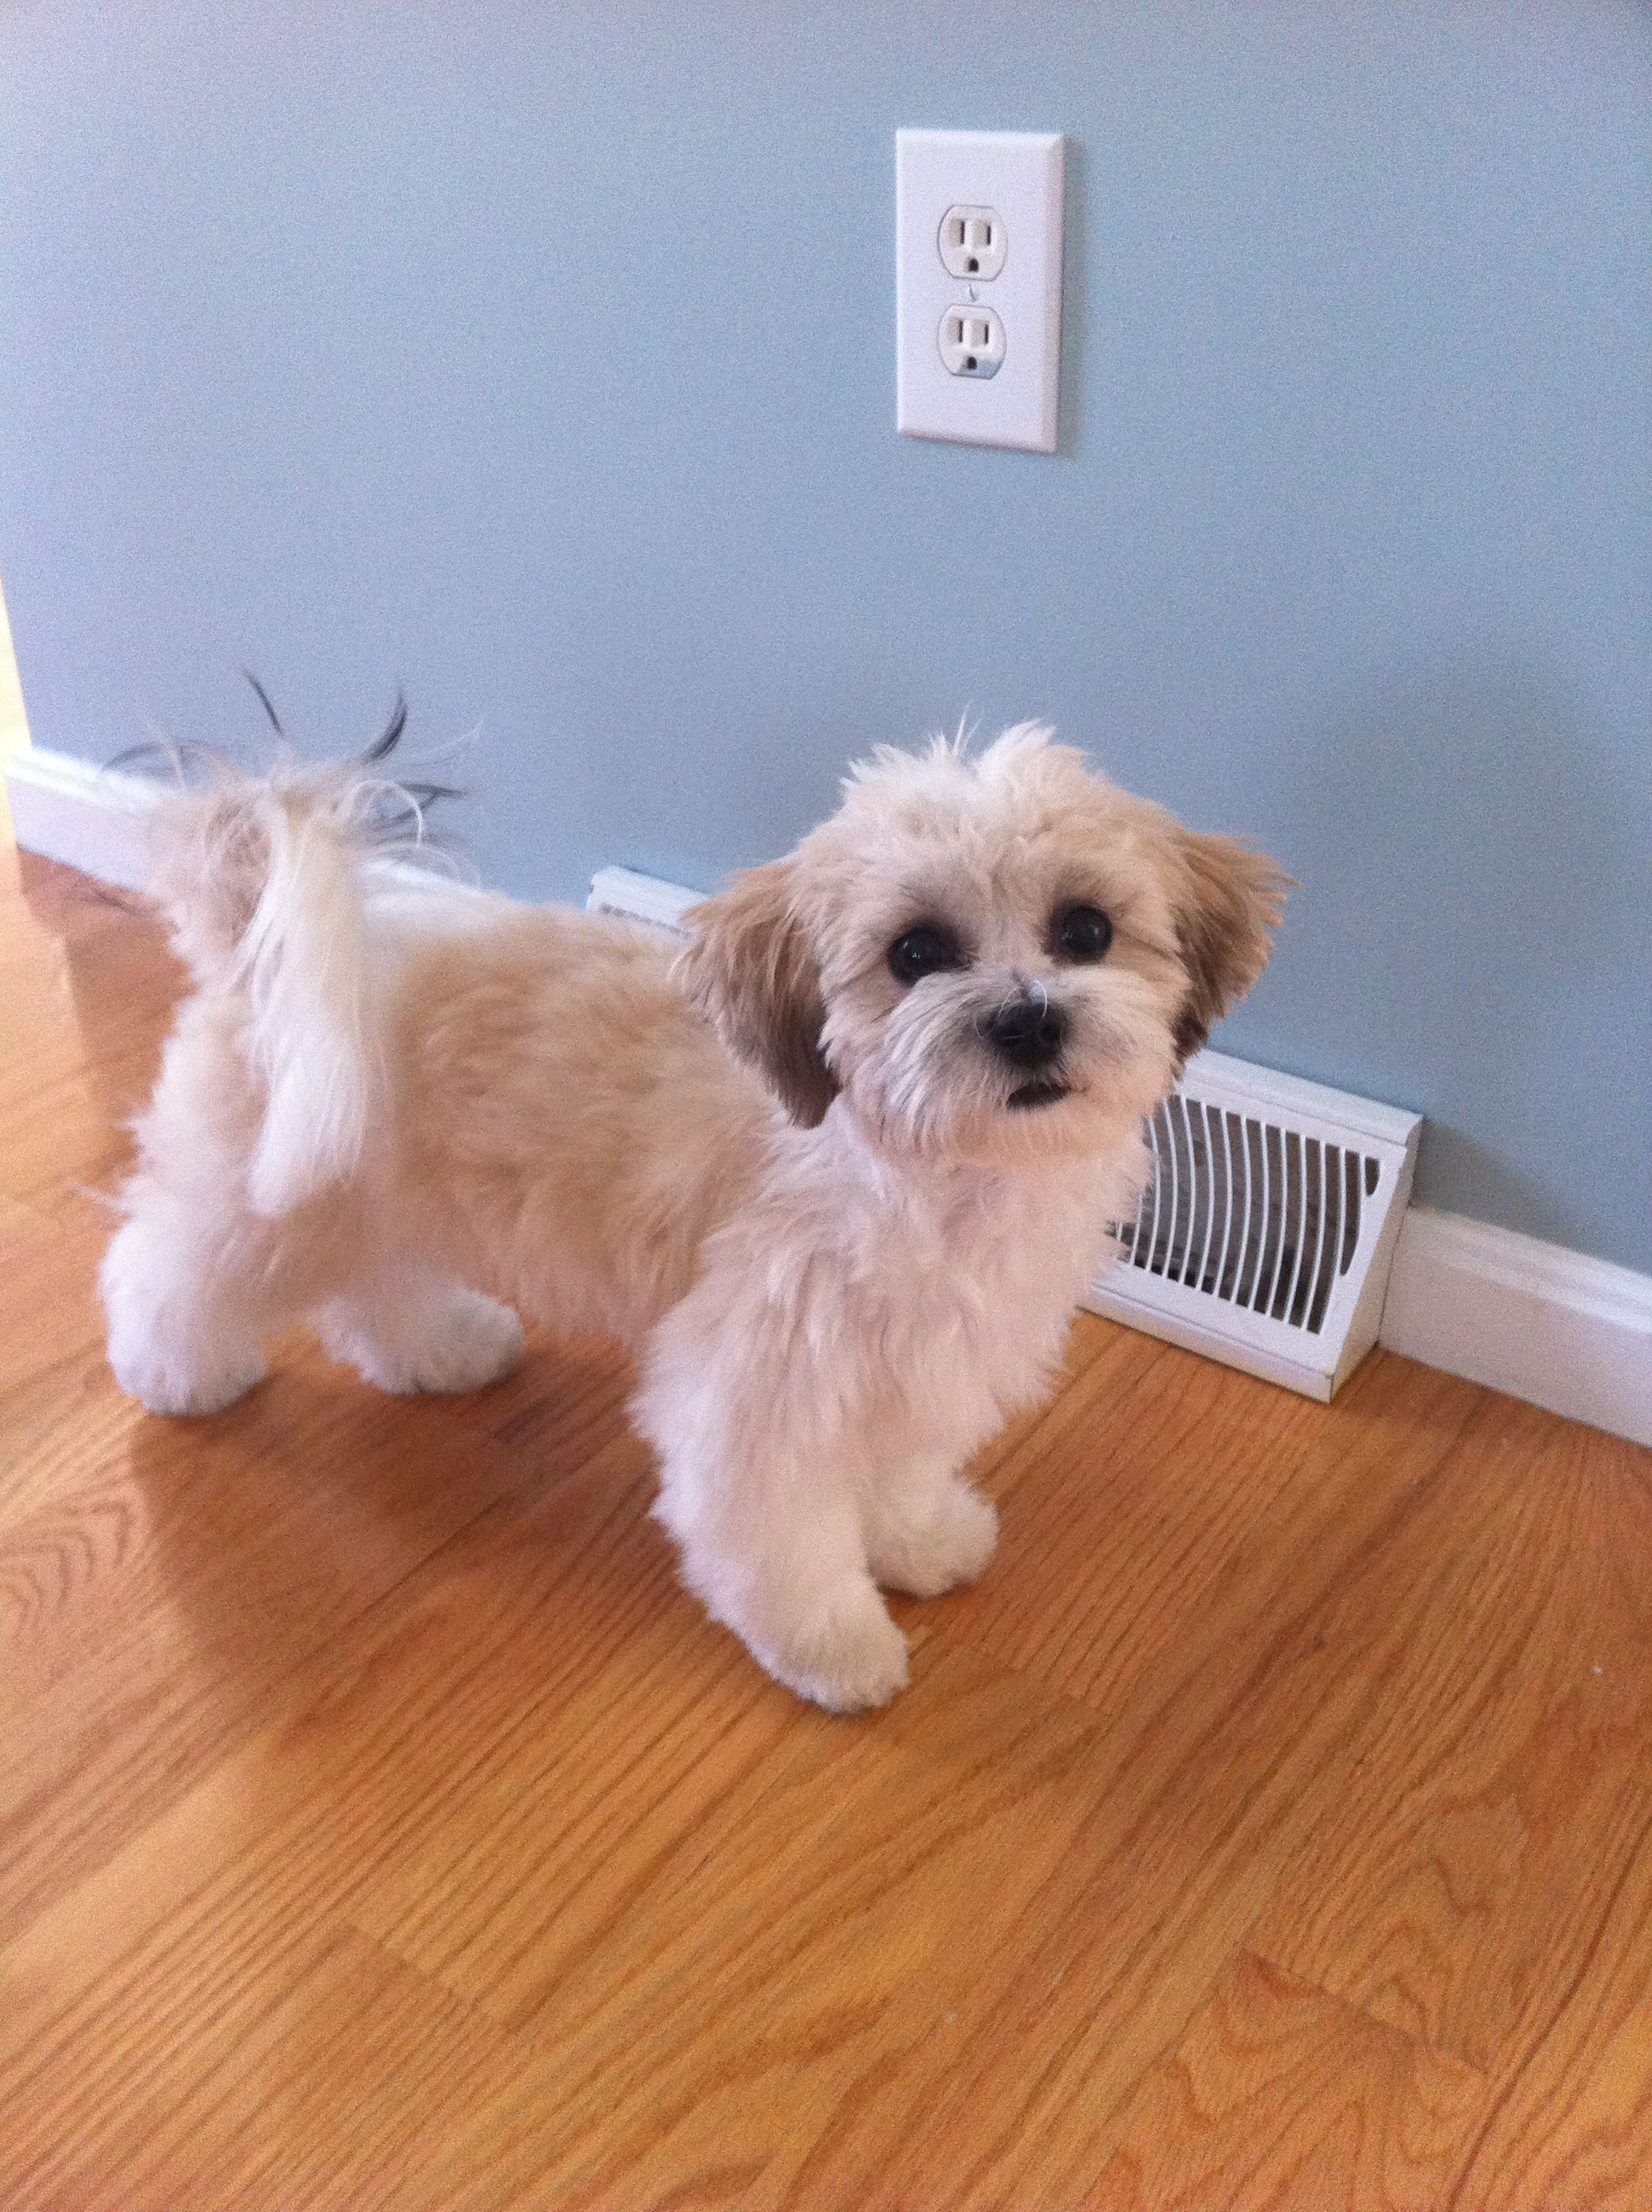 Shichon puppies for sale in kentucky - Zoey Our Shichon After Her First Major Haircut She Was Not Pleased